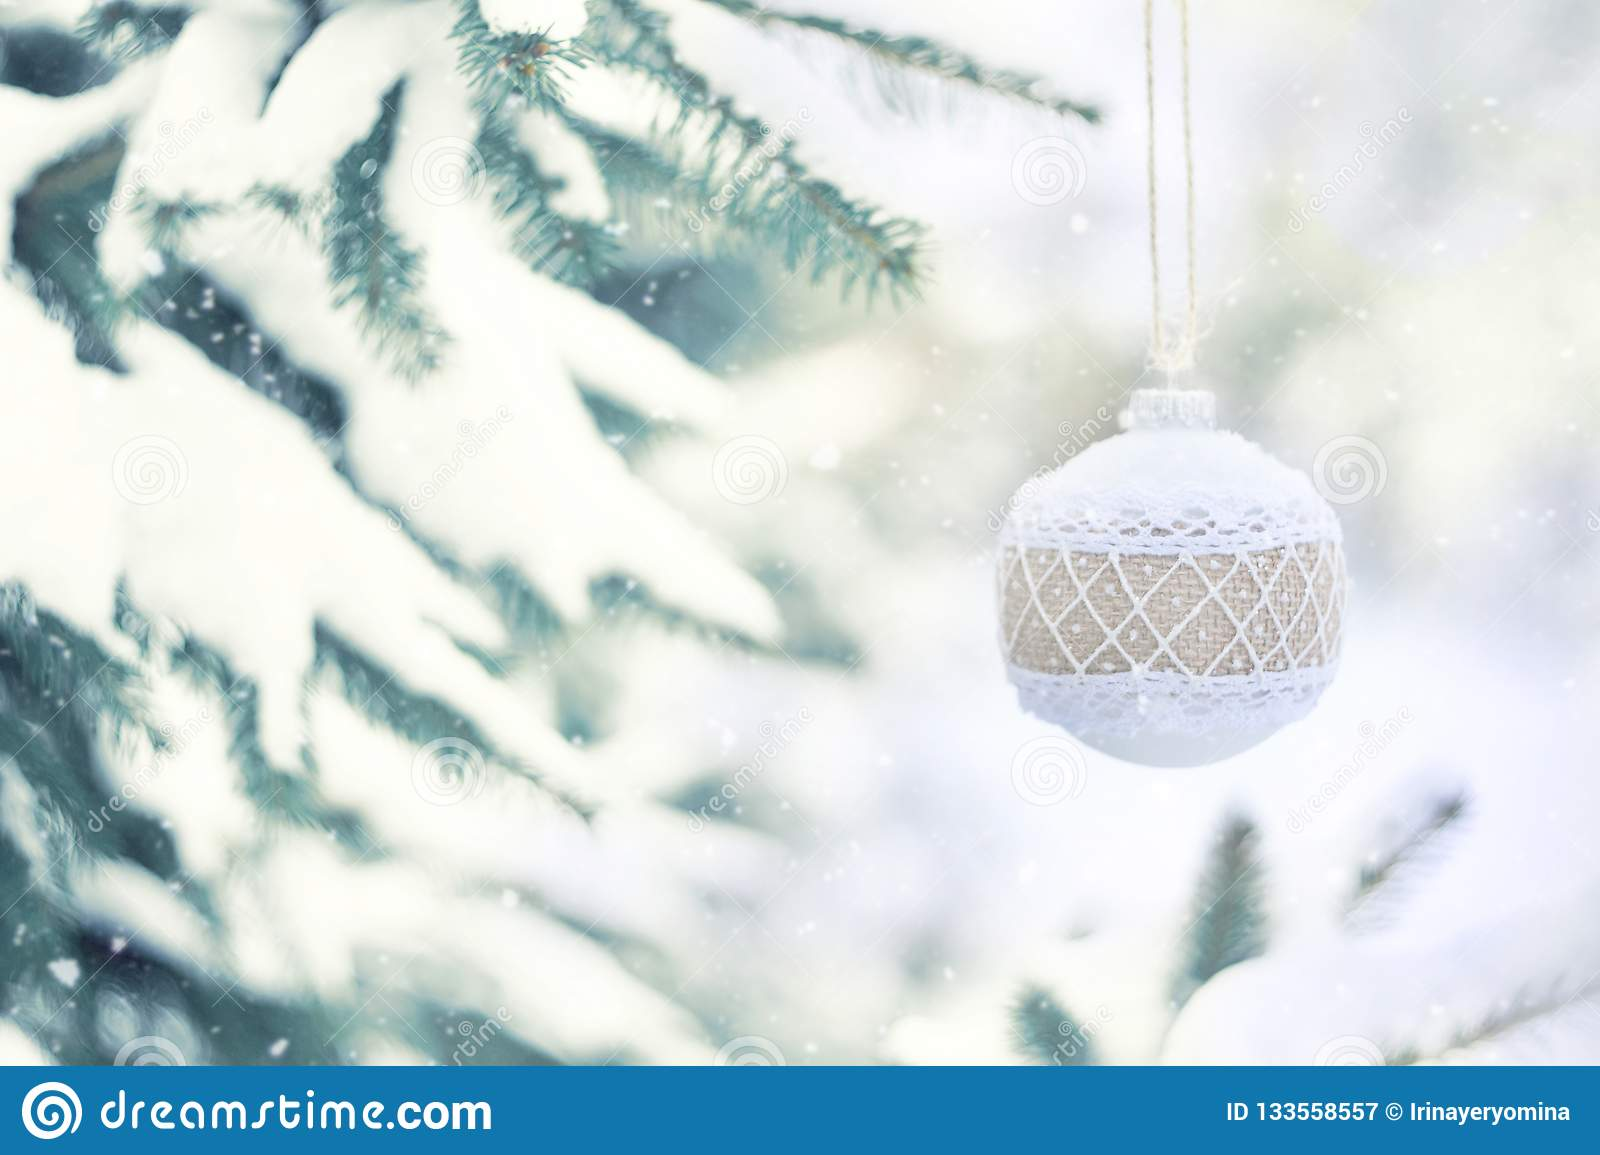 Christmas Winter Holiday Greeting Card White Rustic Christmas Ornament Ball With Burlap On Green Christmas Trees With Snow Stock Image Image Of Decoration Greeting 133558557